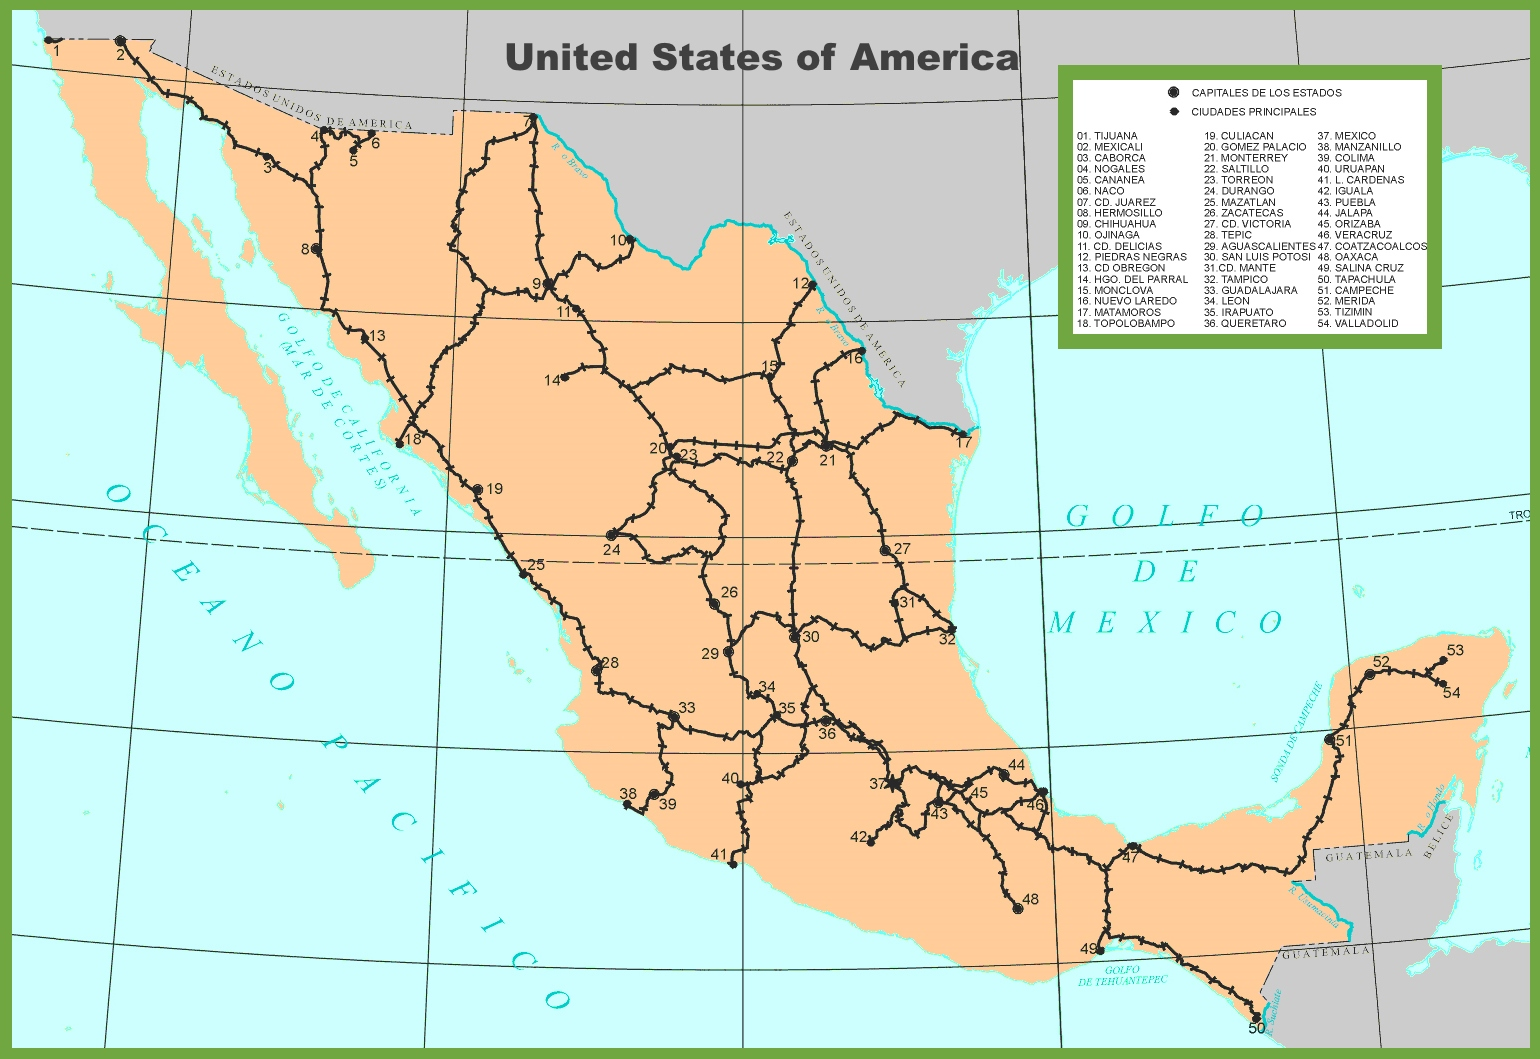 Obregon Mexico Map.Mexico Railway Map